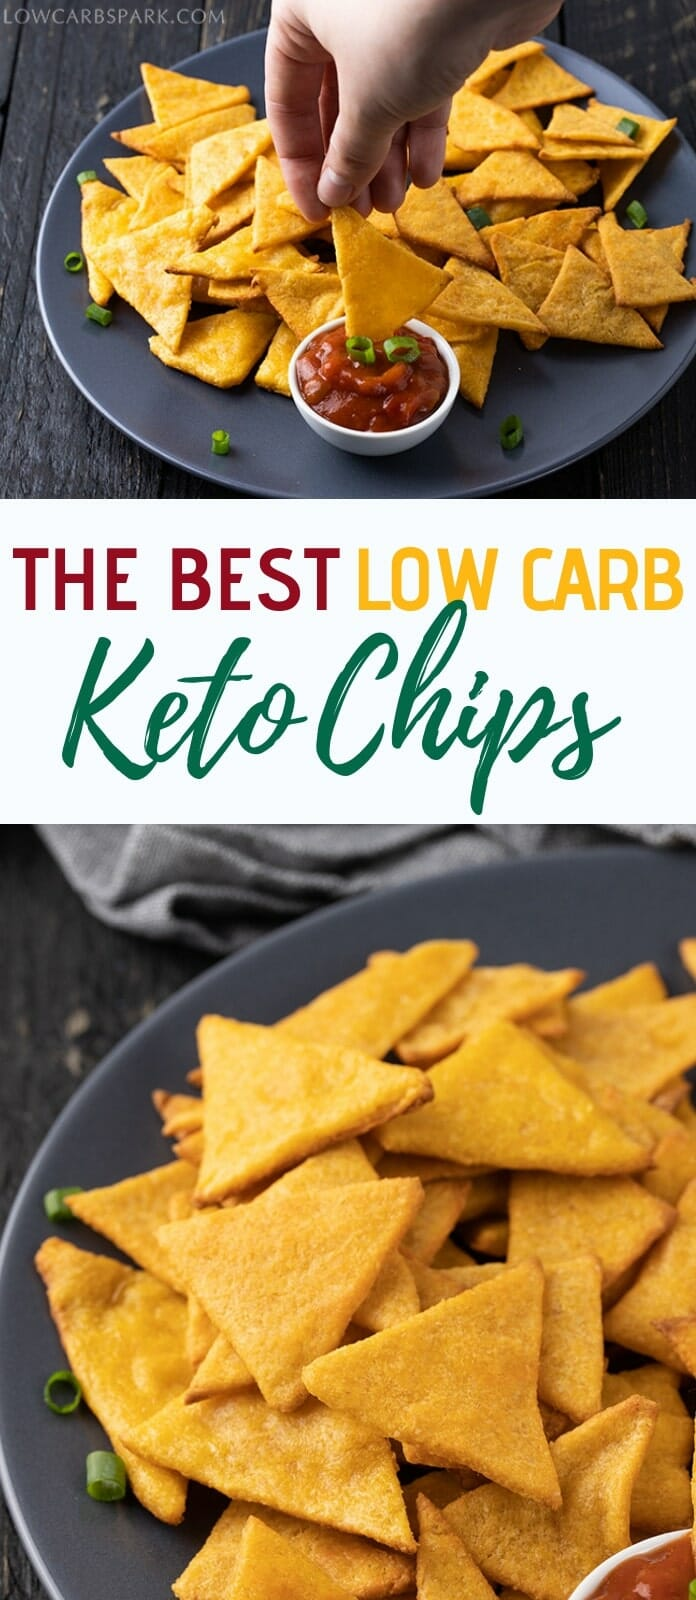 Try these brilliant keto tortilla chips are made with mozzarella cheese and almond flour. Perfect low carb chips for dipping in guacamole or salsa. You will need to use a microwave or a double boiler to make these fathead dough chips. Enjoy chips that are low carb, Atkins diet friendly, low carb high fat, grain-free, gluten-free. #ketochips #ketosnacks #lowcarb via @lowcarbspark